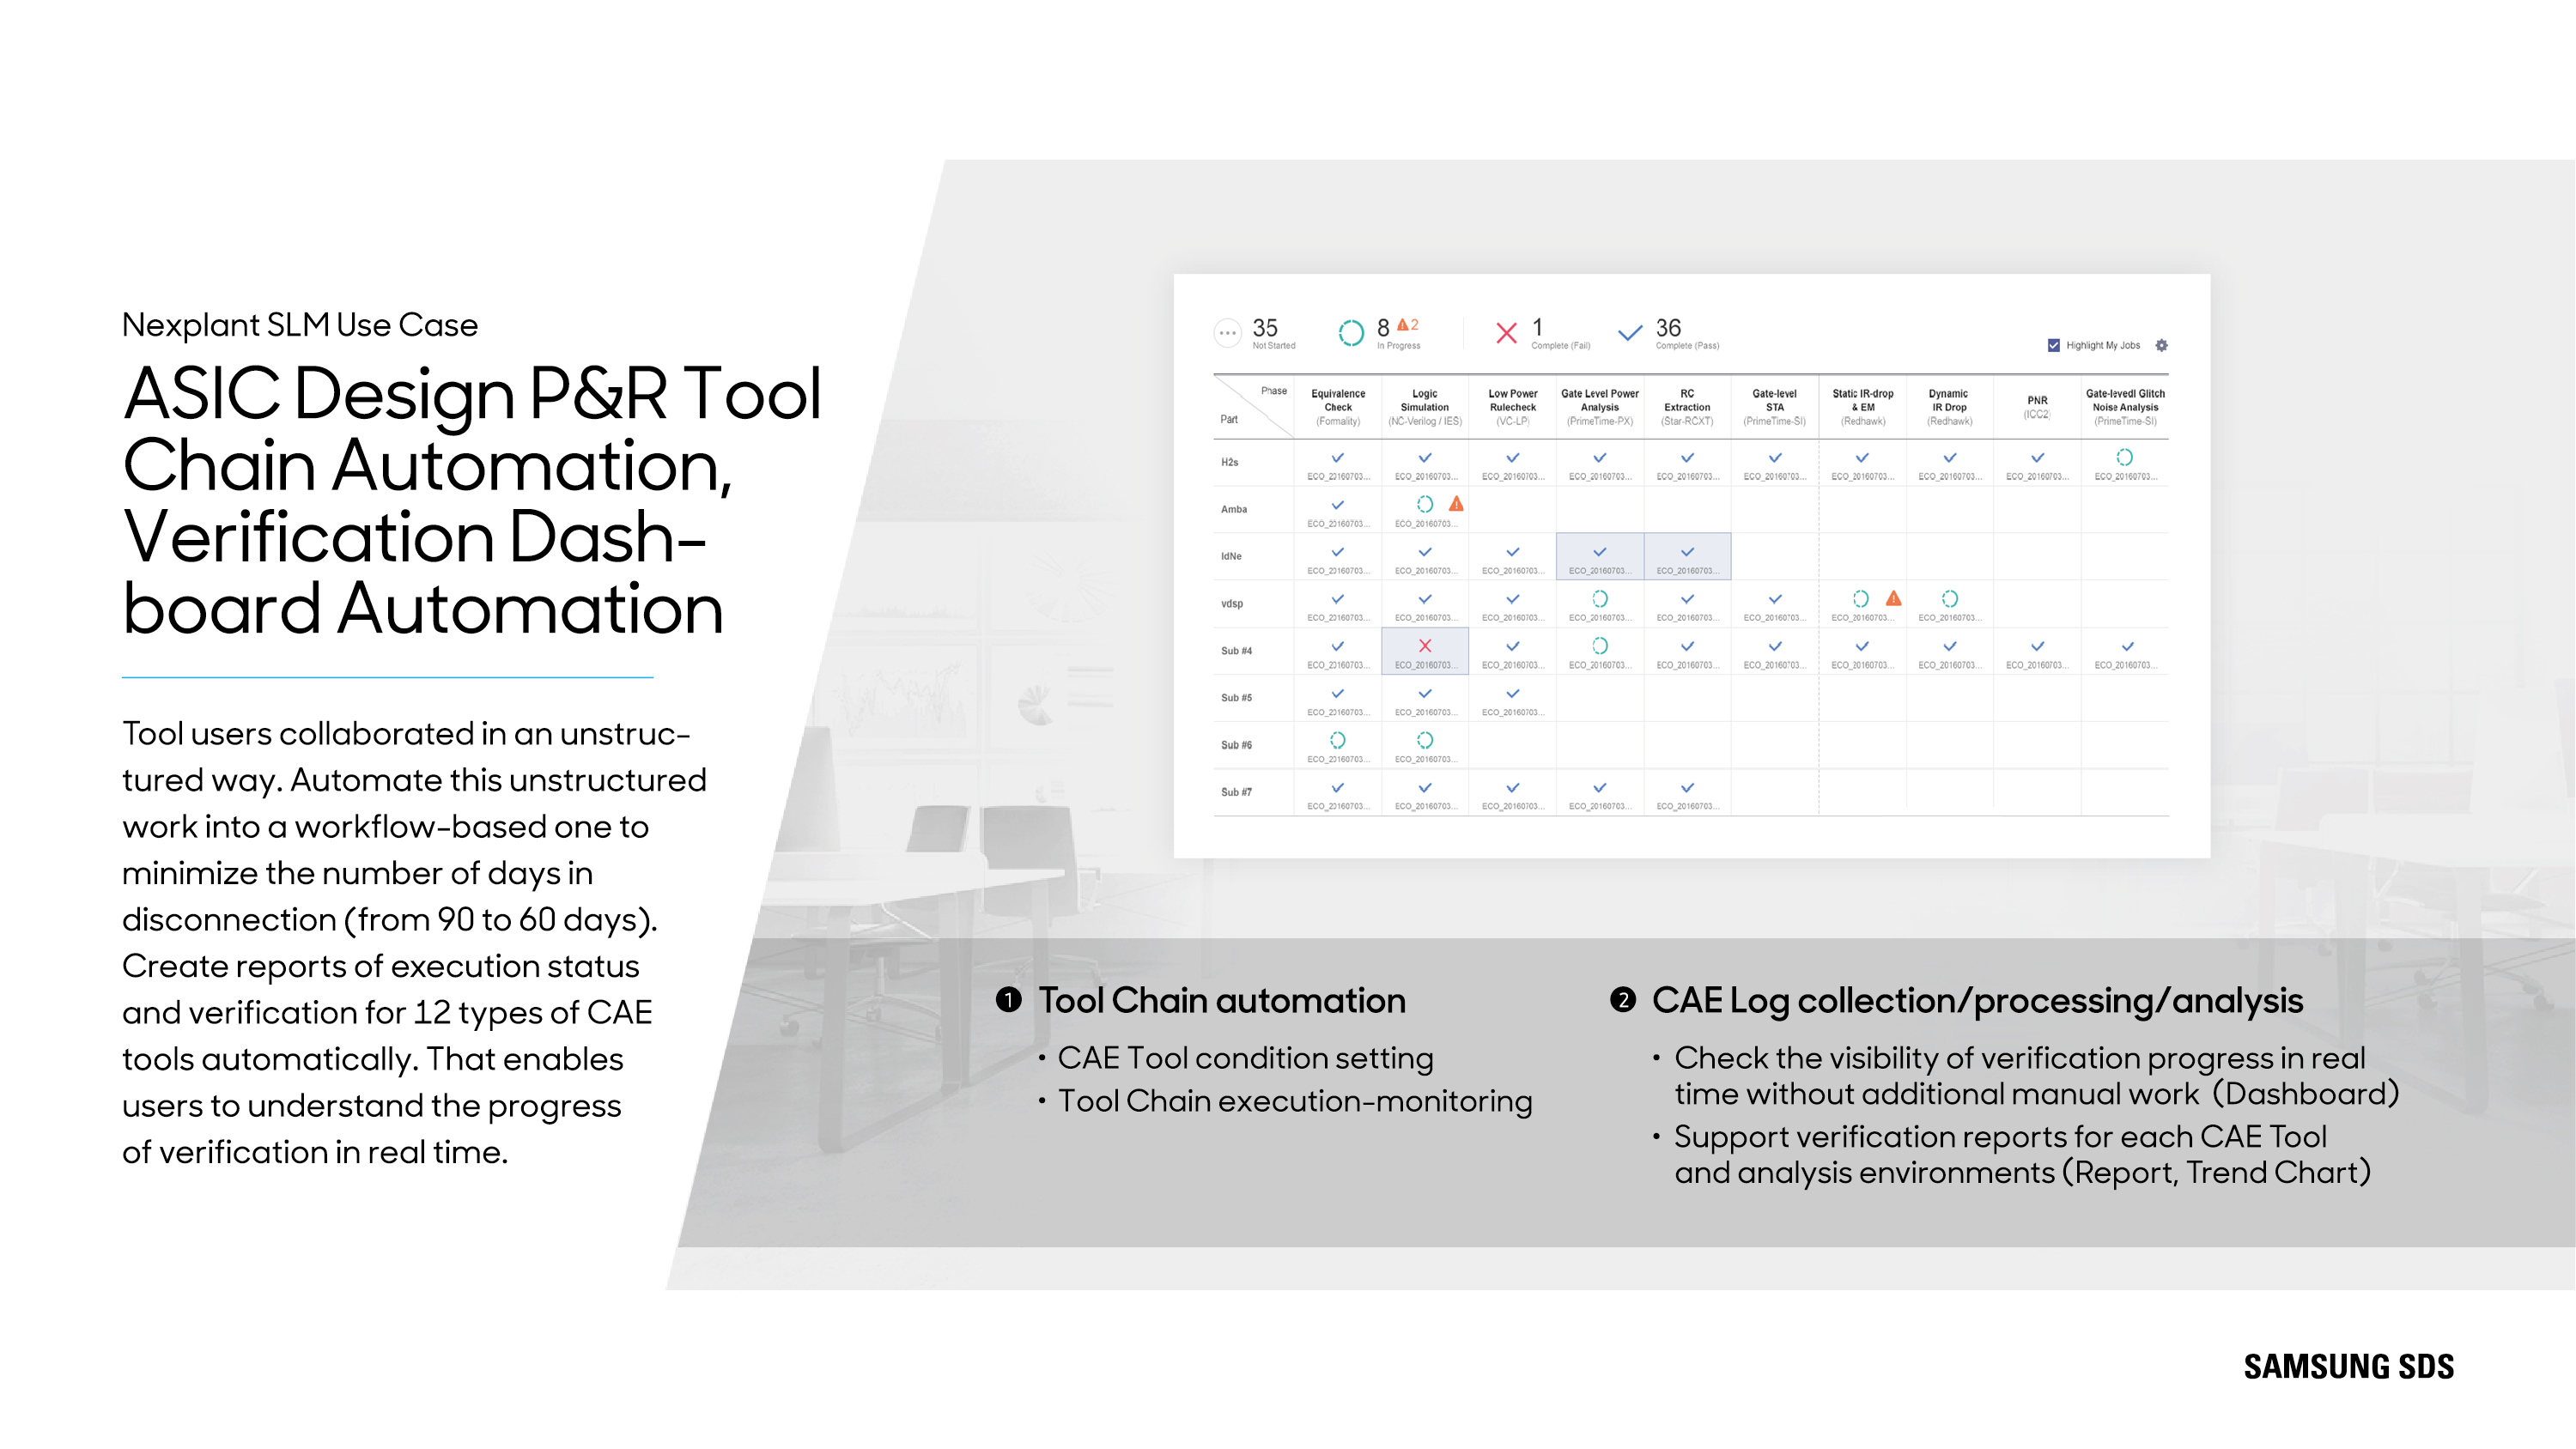 ASIC design P&R tool chain automation enables tool users collaboration in a structured way.